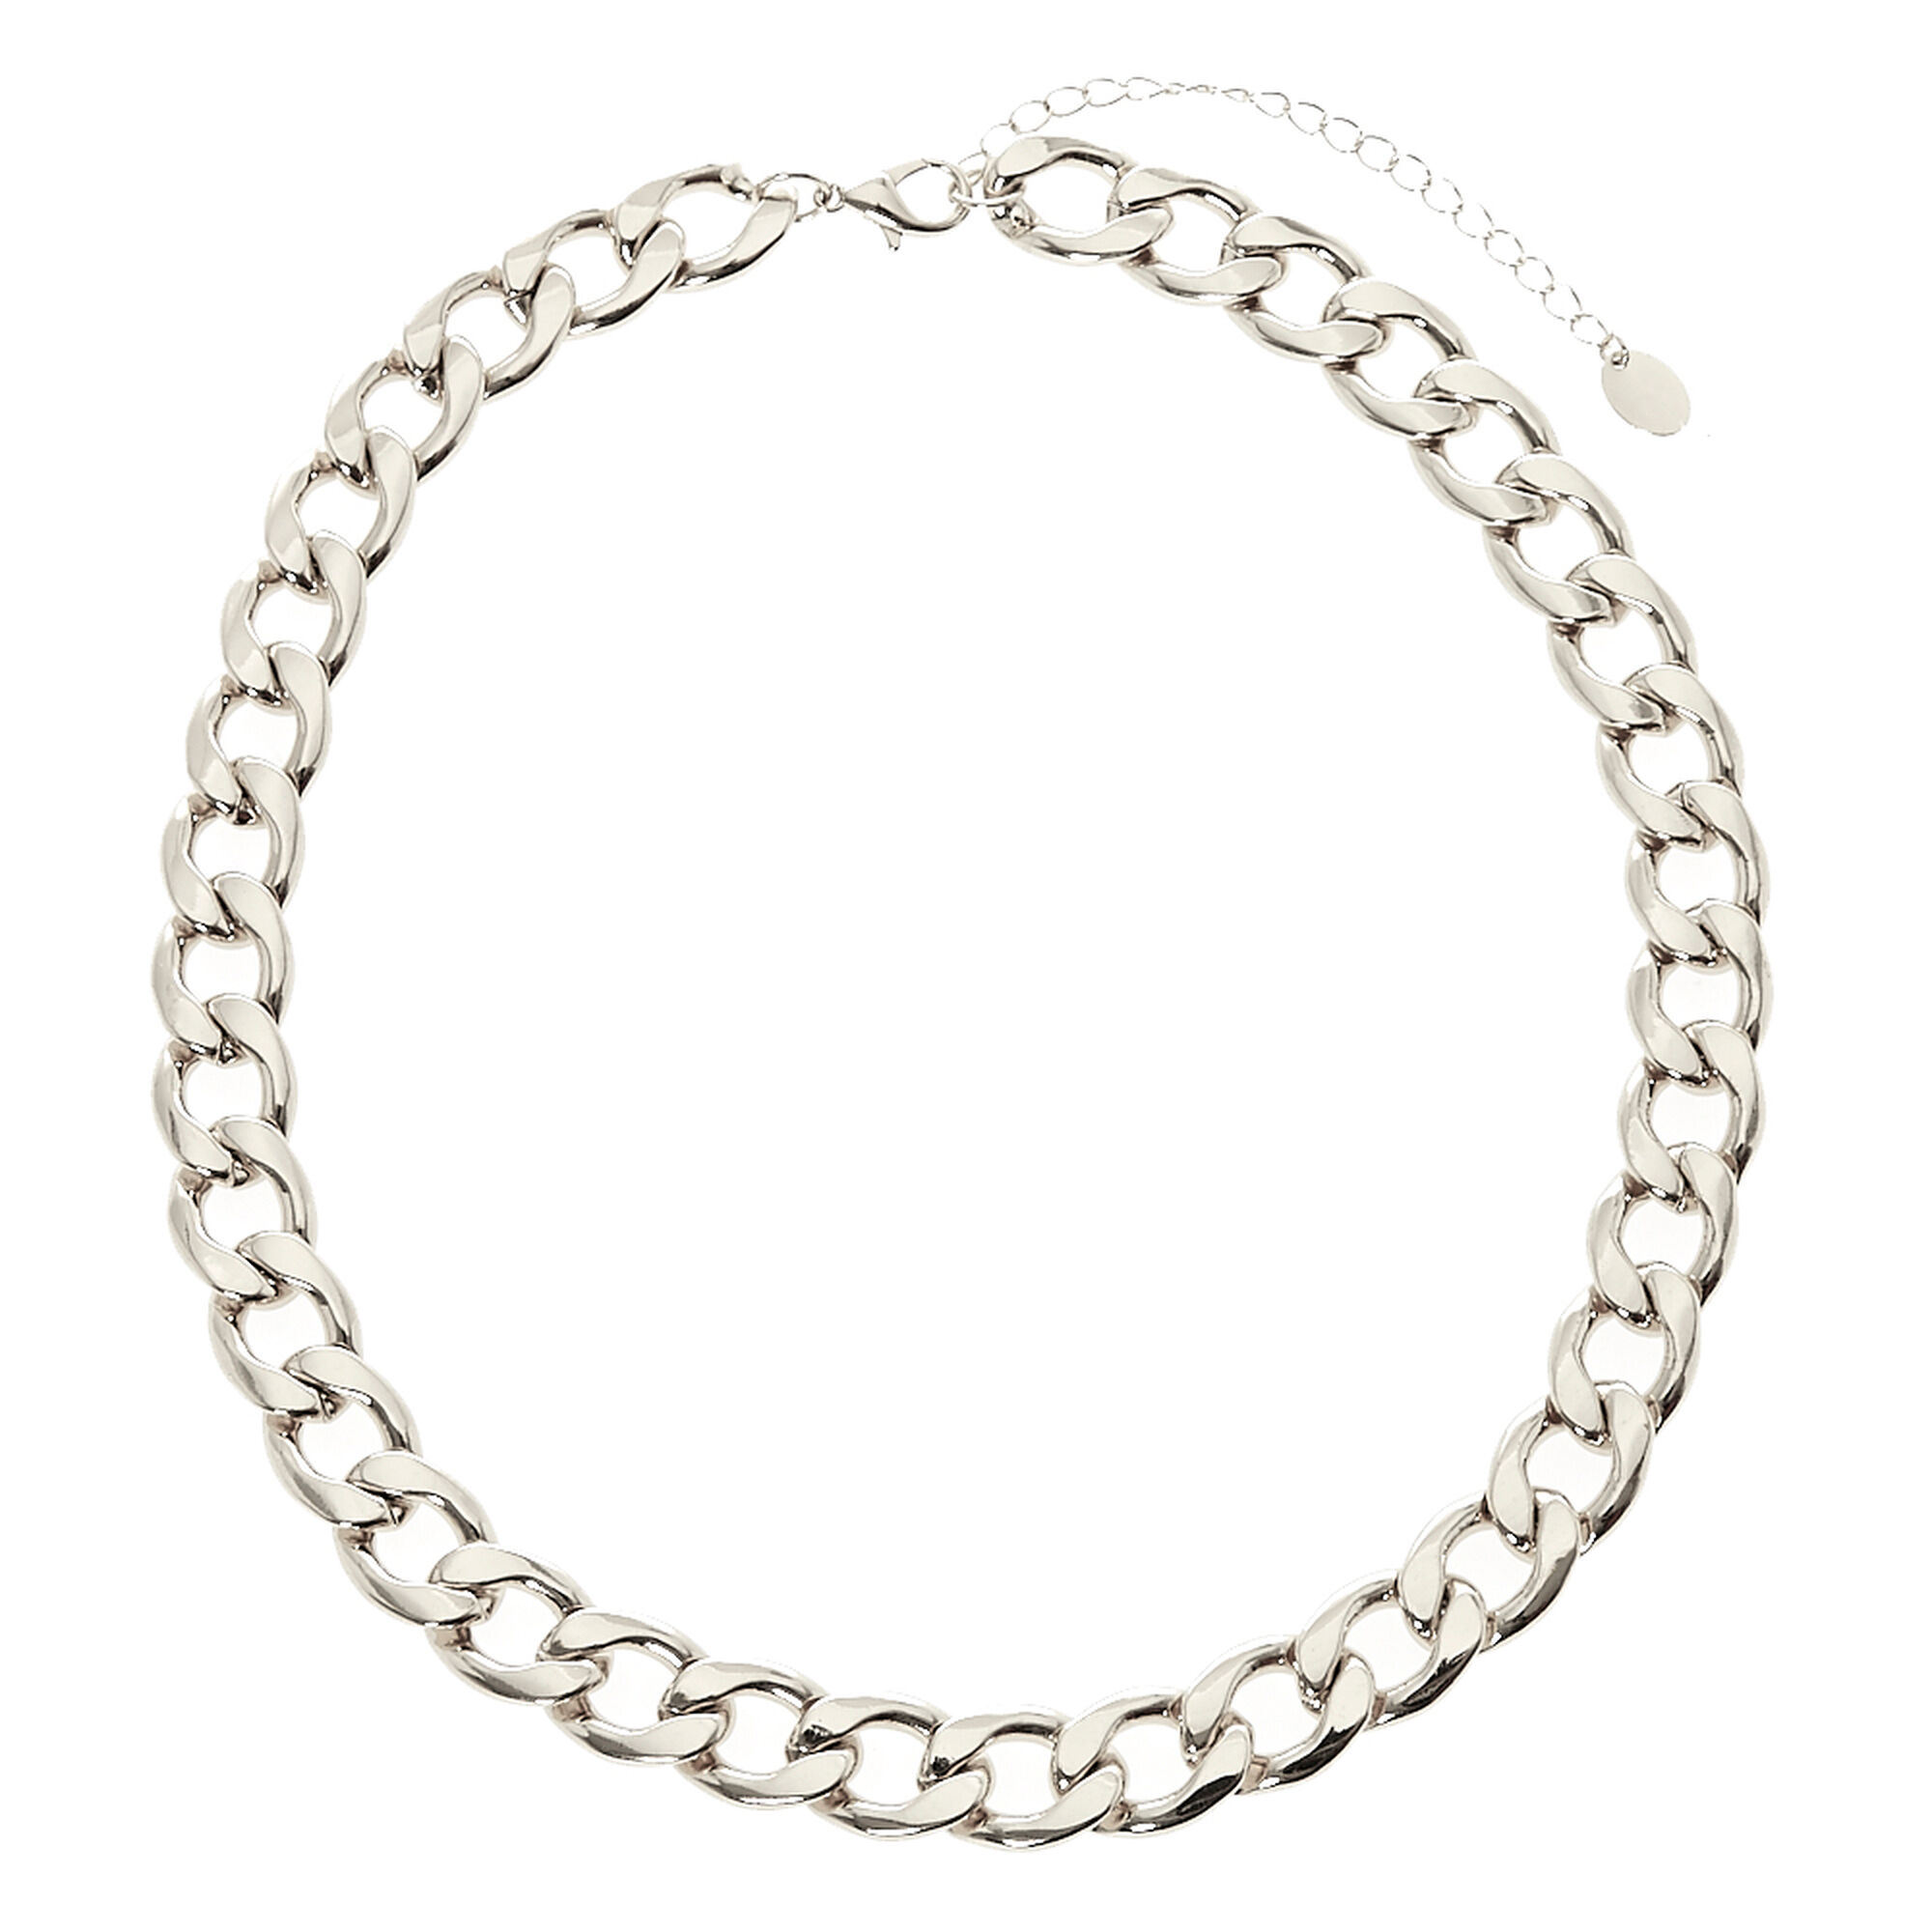 jewelry sterling com company silver child inches jewellery dp honolulu chain size cable amazon